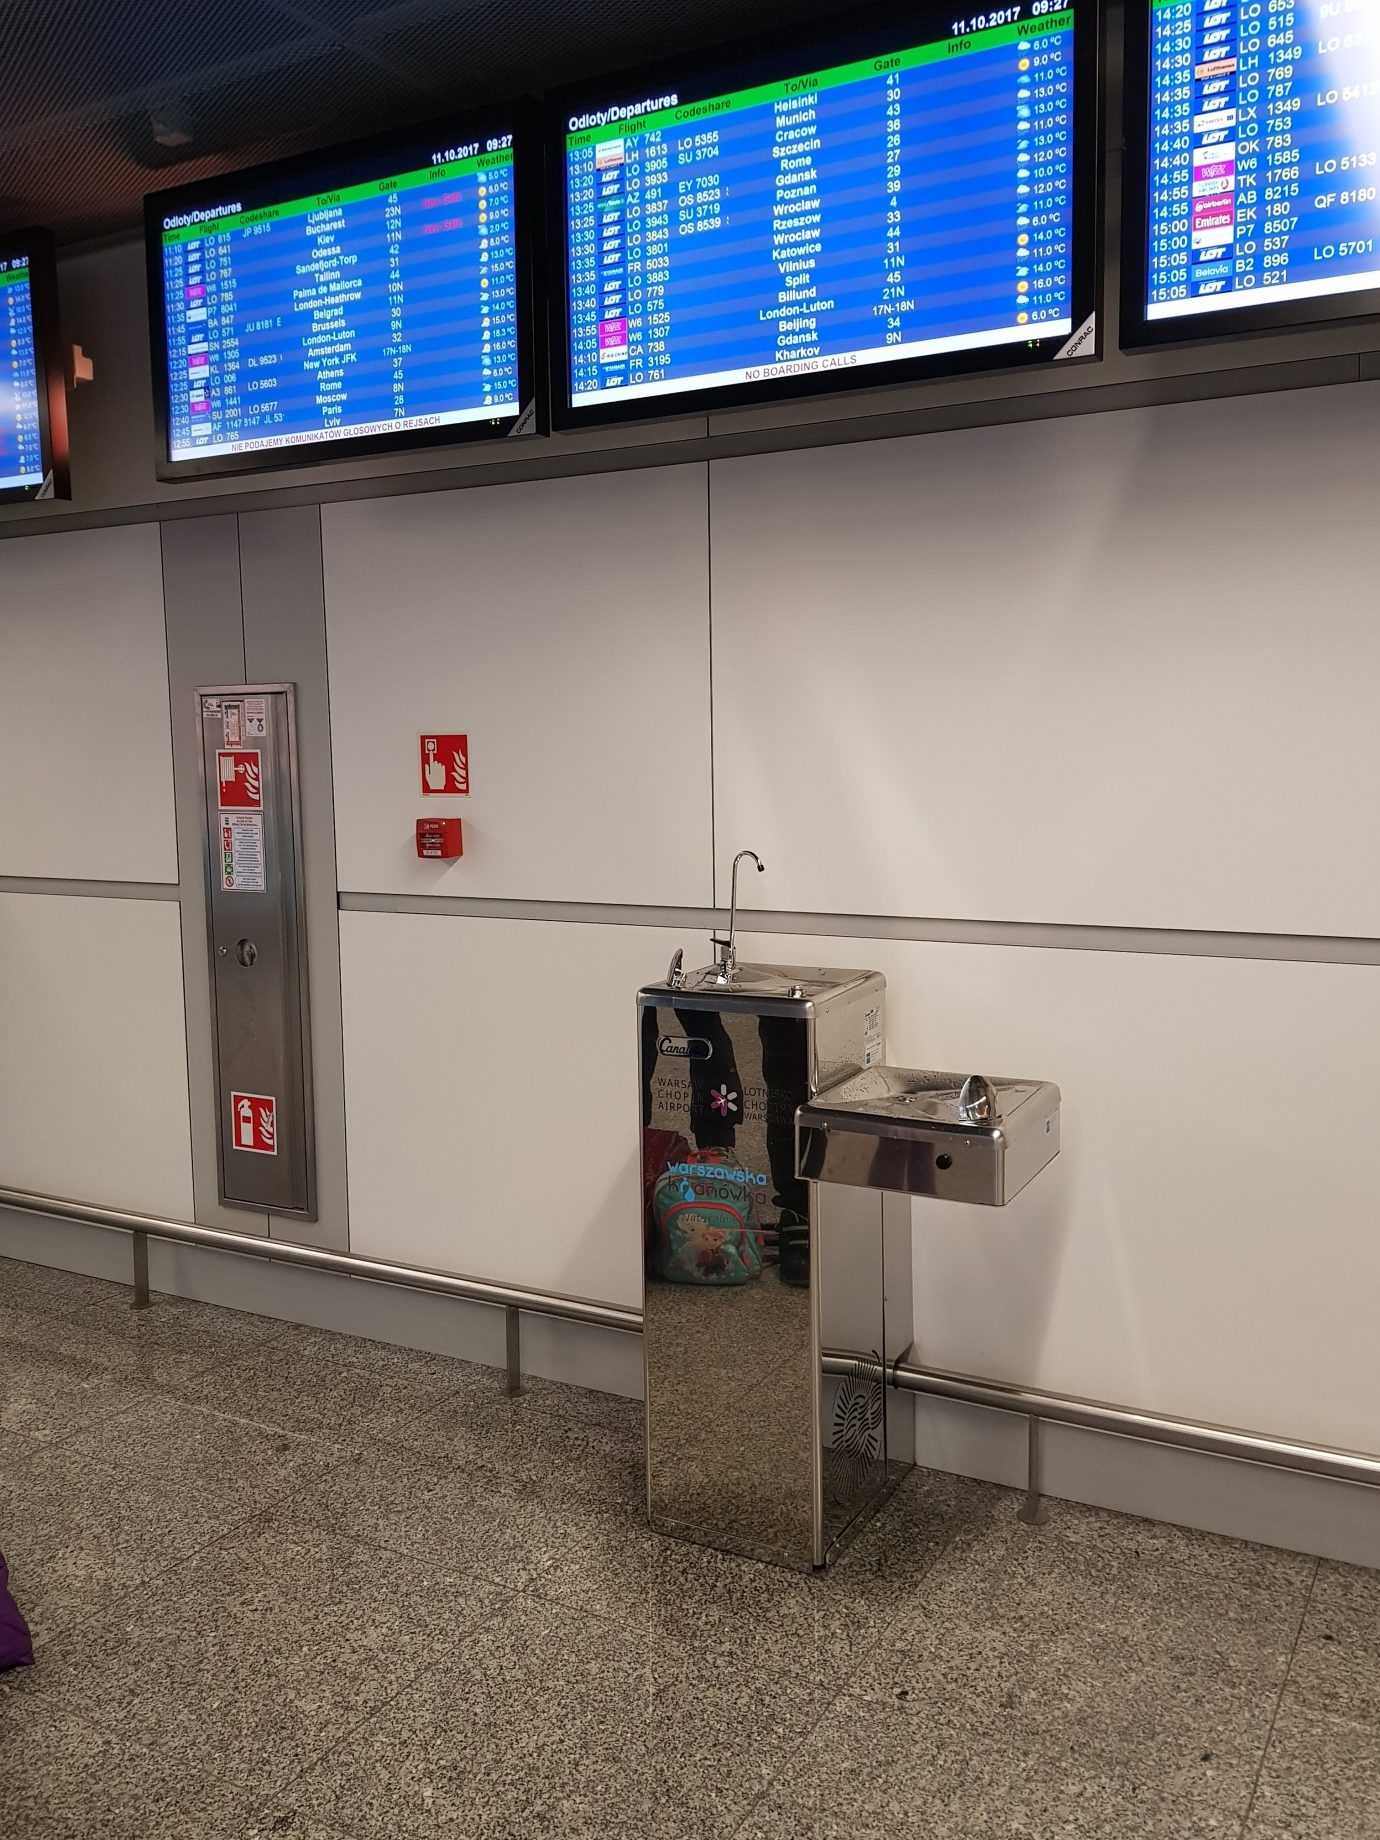 accessible water tap chopin airport poland